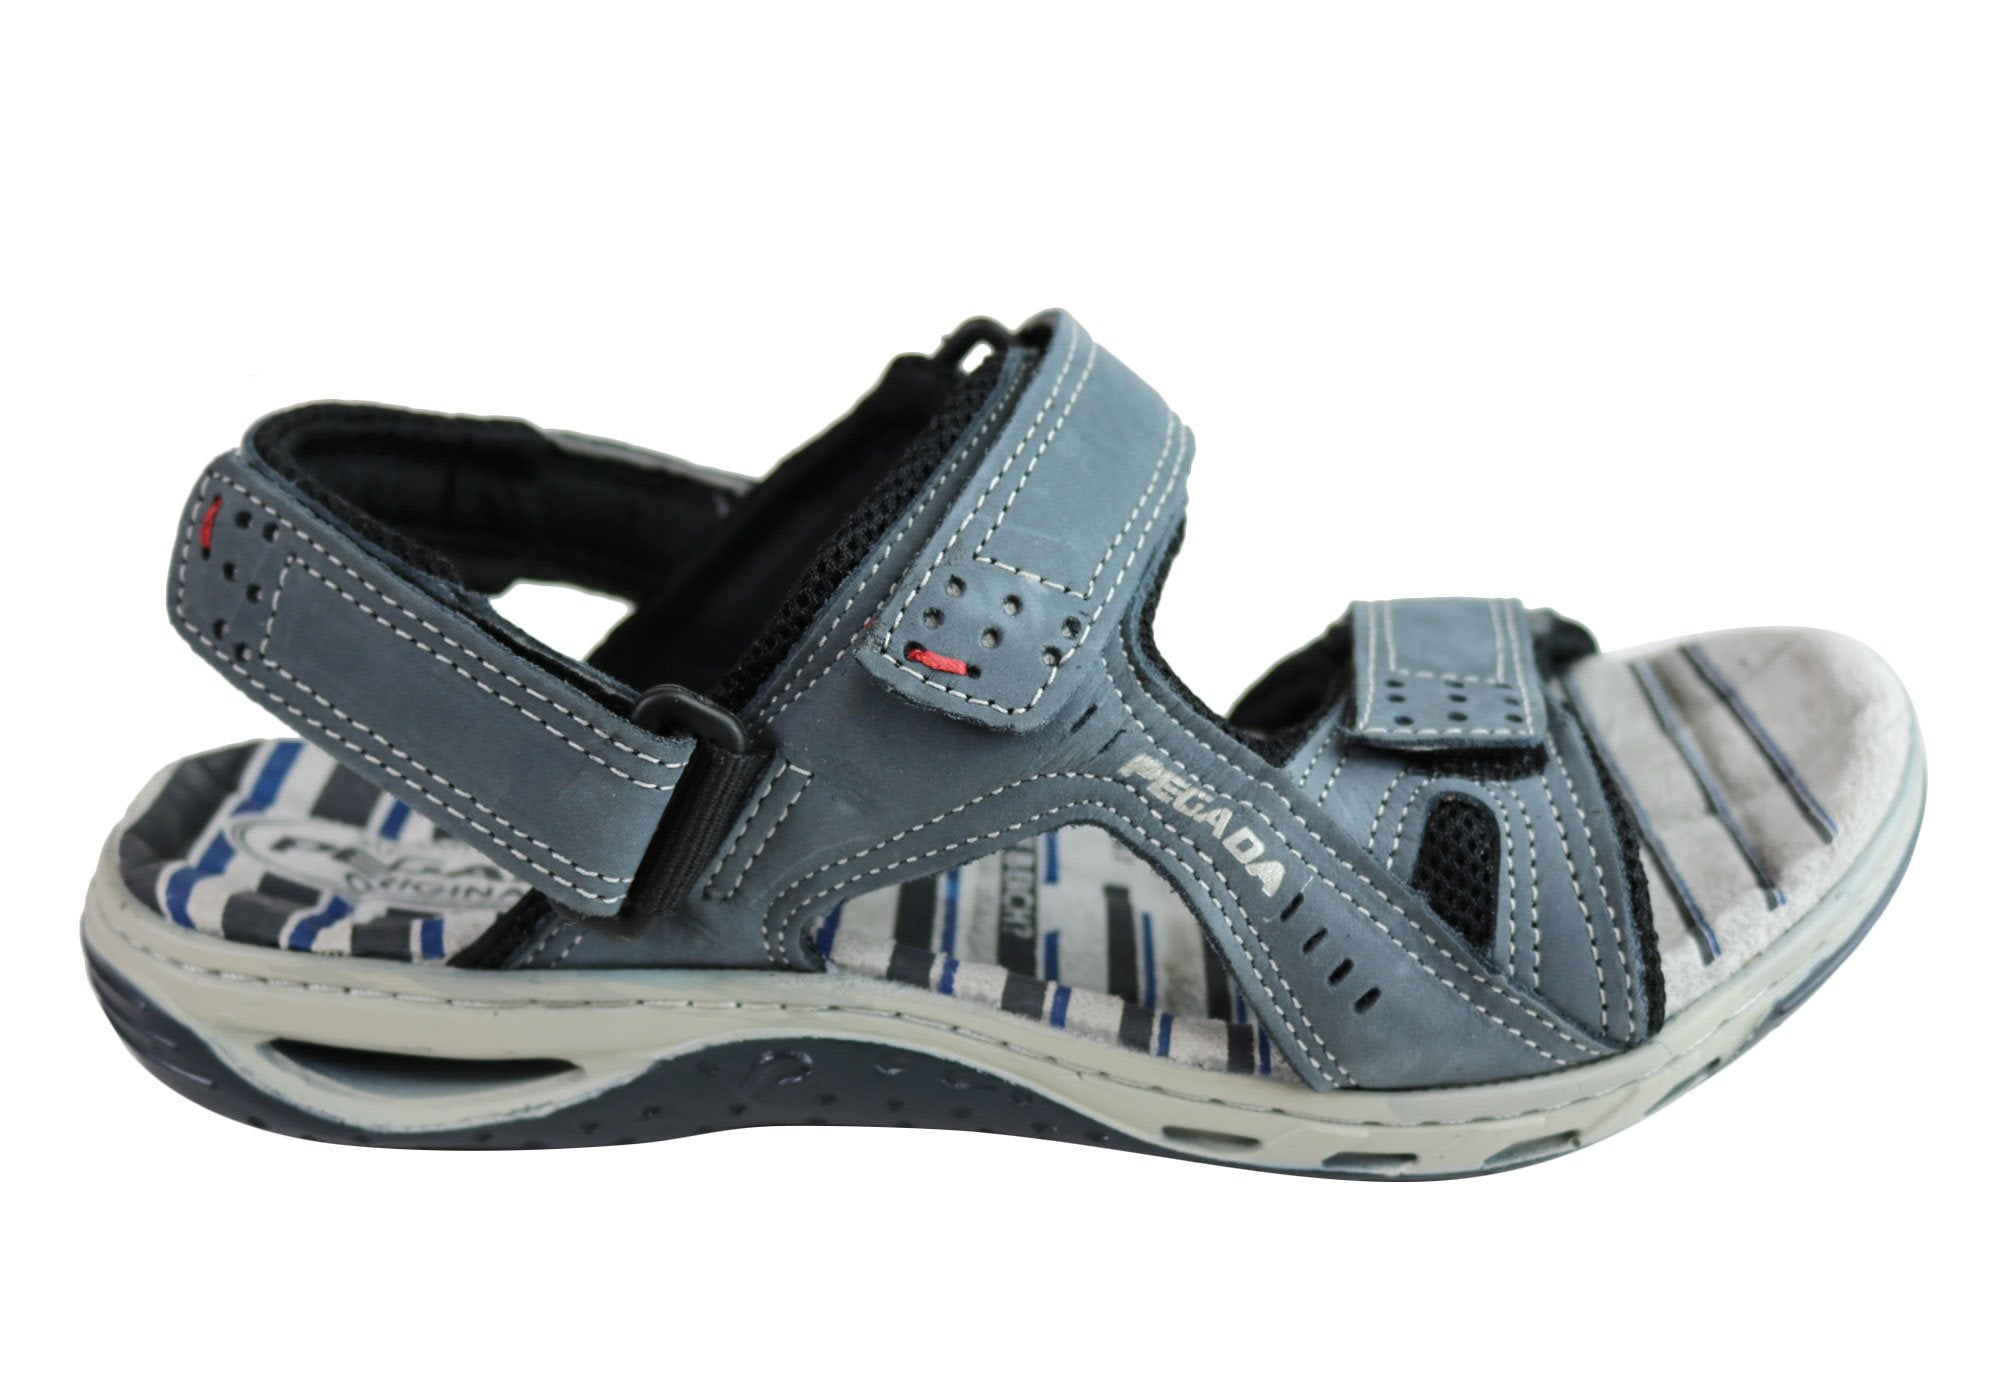 9cf5418d600 Pegada Jim Mens Leather Comfortable Cushioned Sandals Made In Brazil